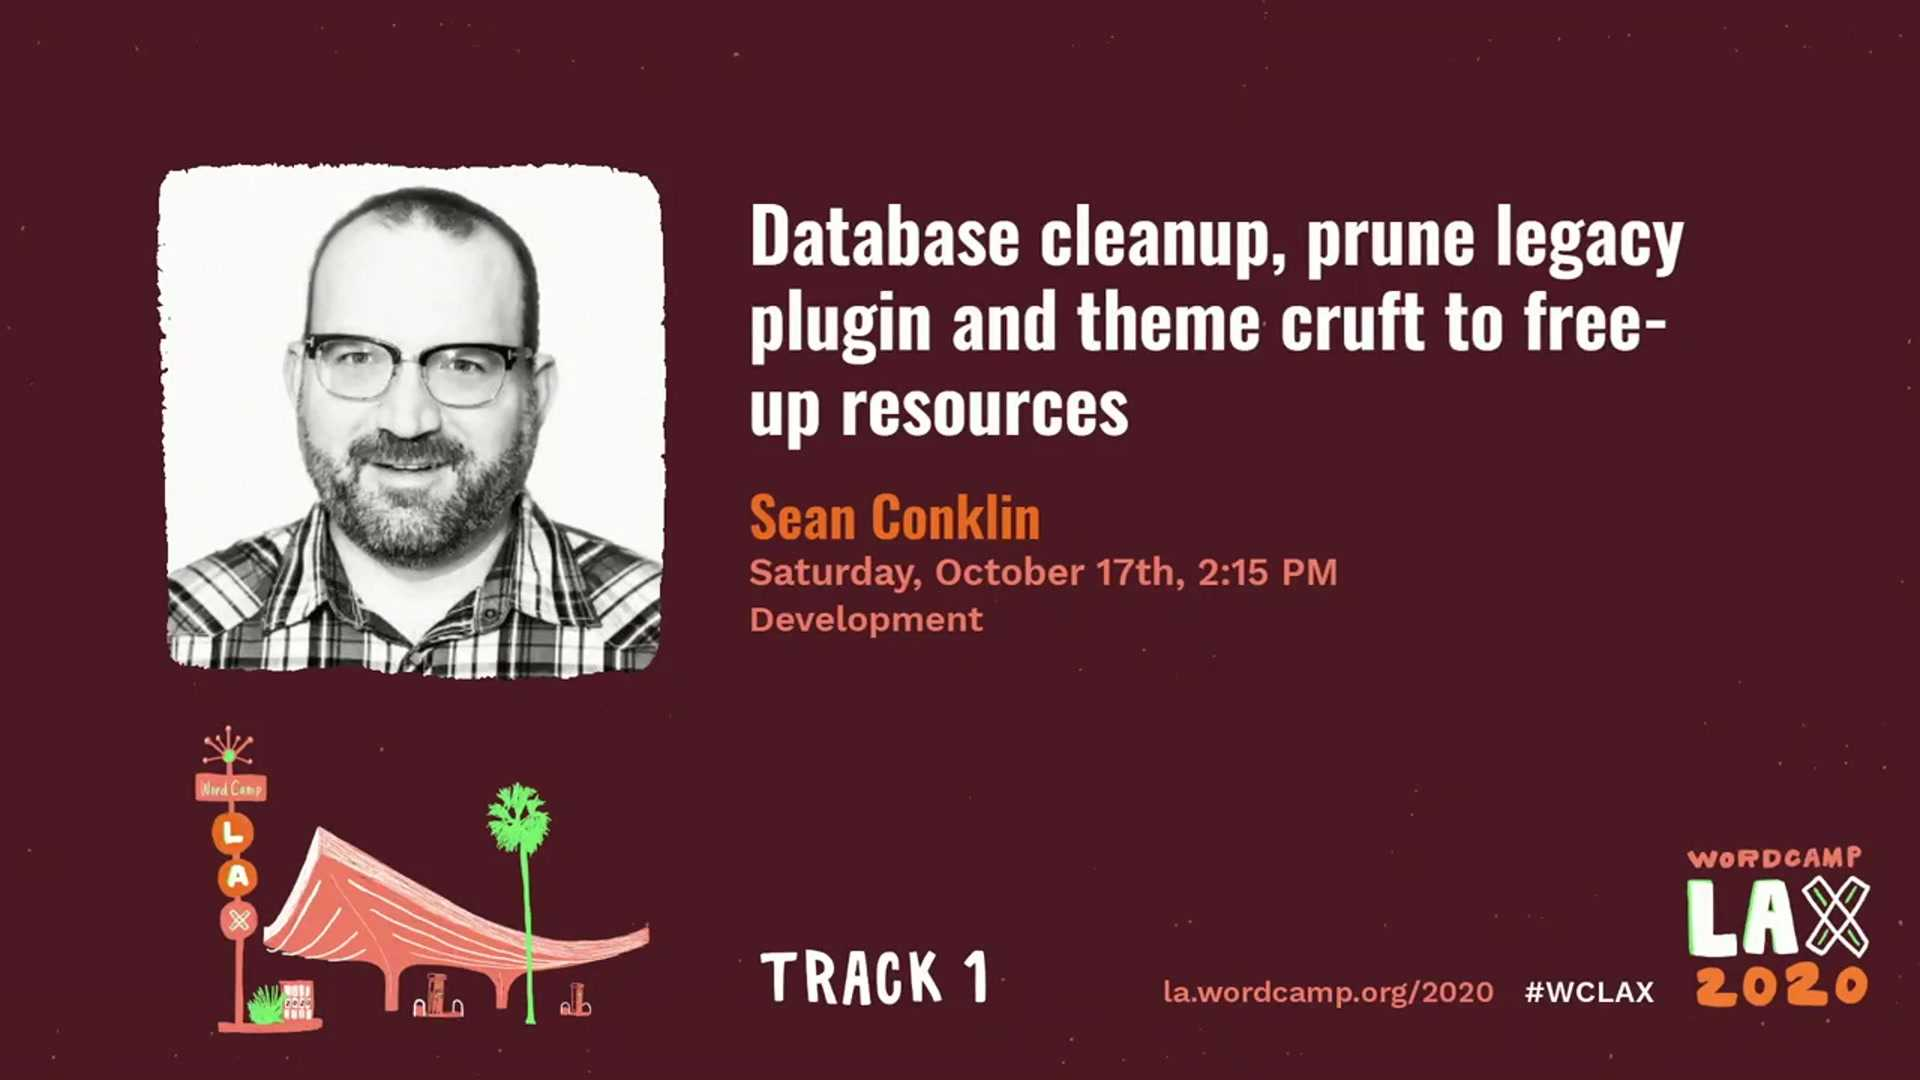 Sean Conklin: Database cleanup, prune legacy plugin and theme cruft to free-up resources